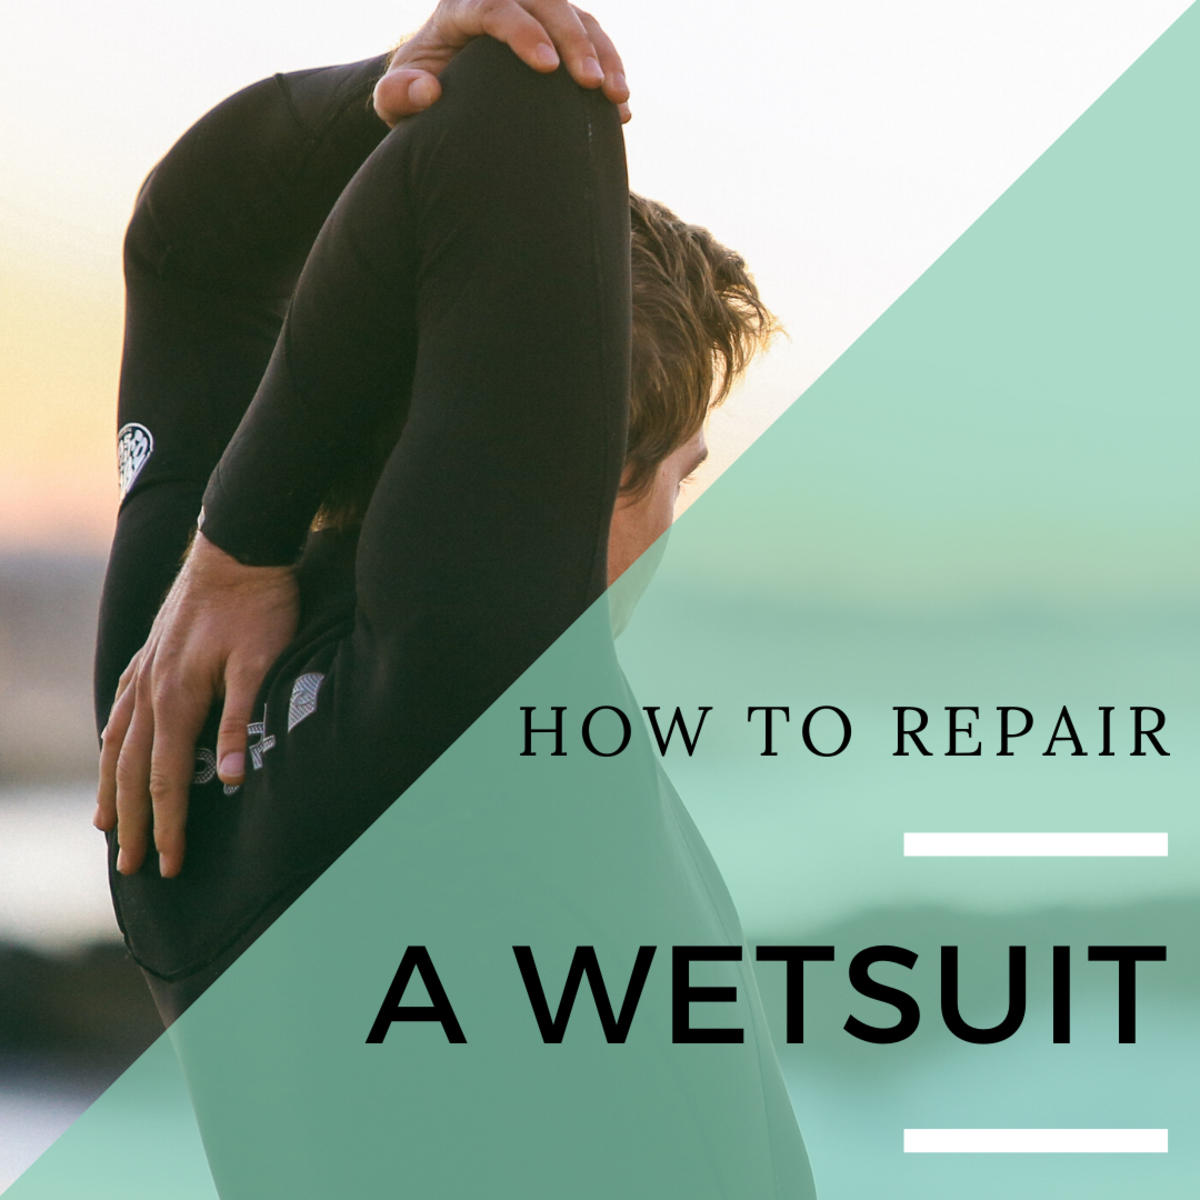 How to Repair a Wetsuit (Tears or Rips)